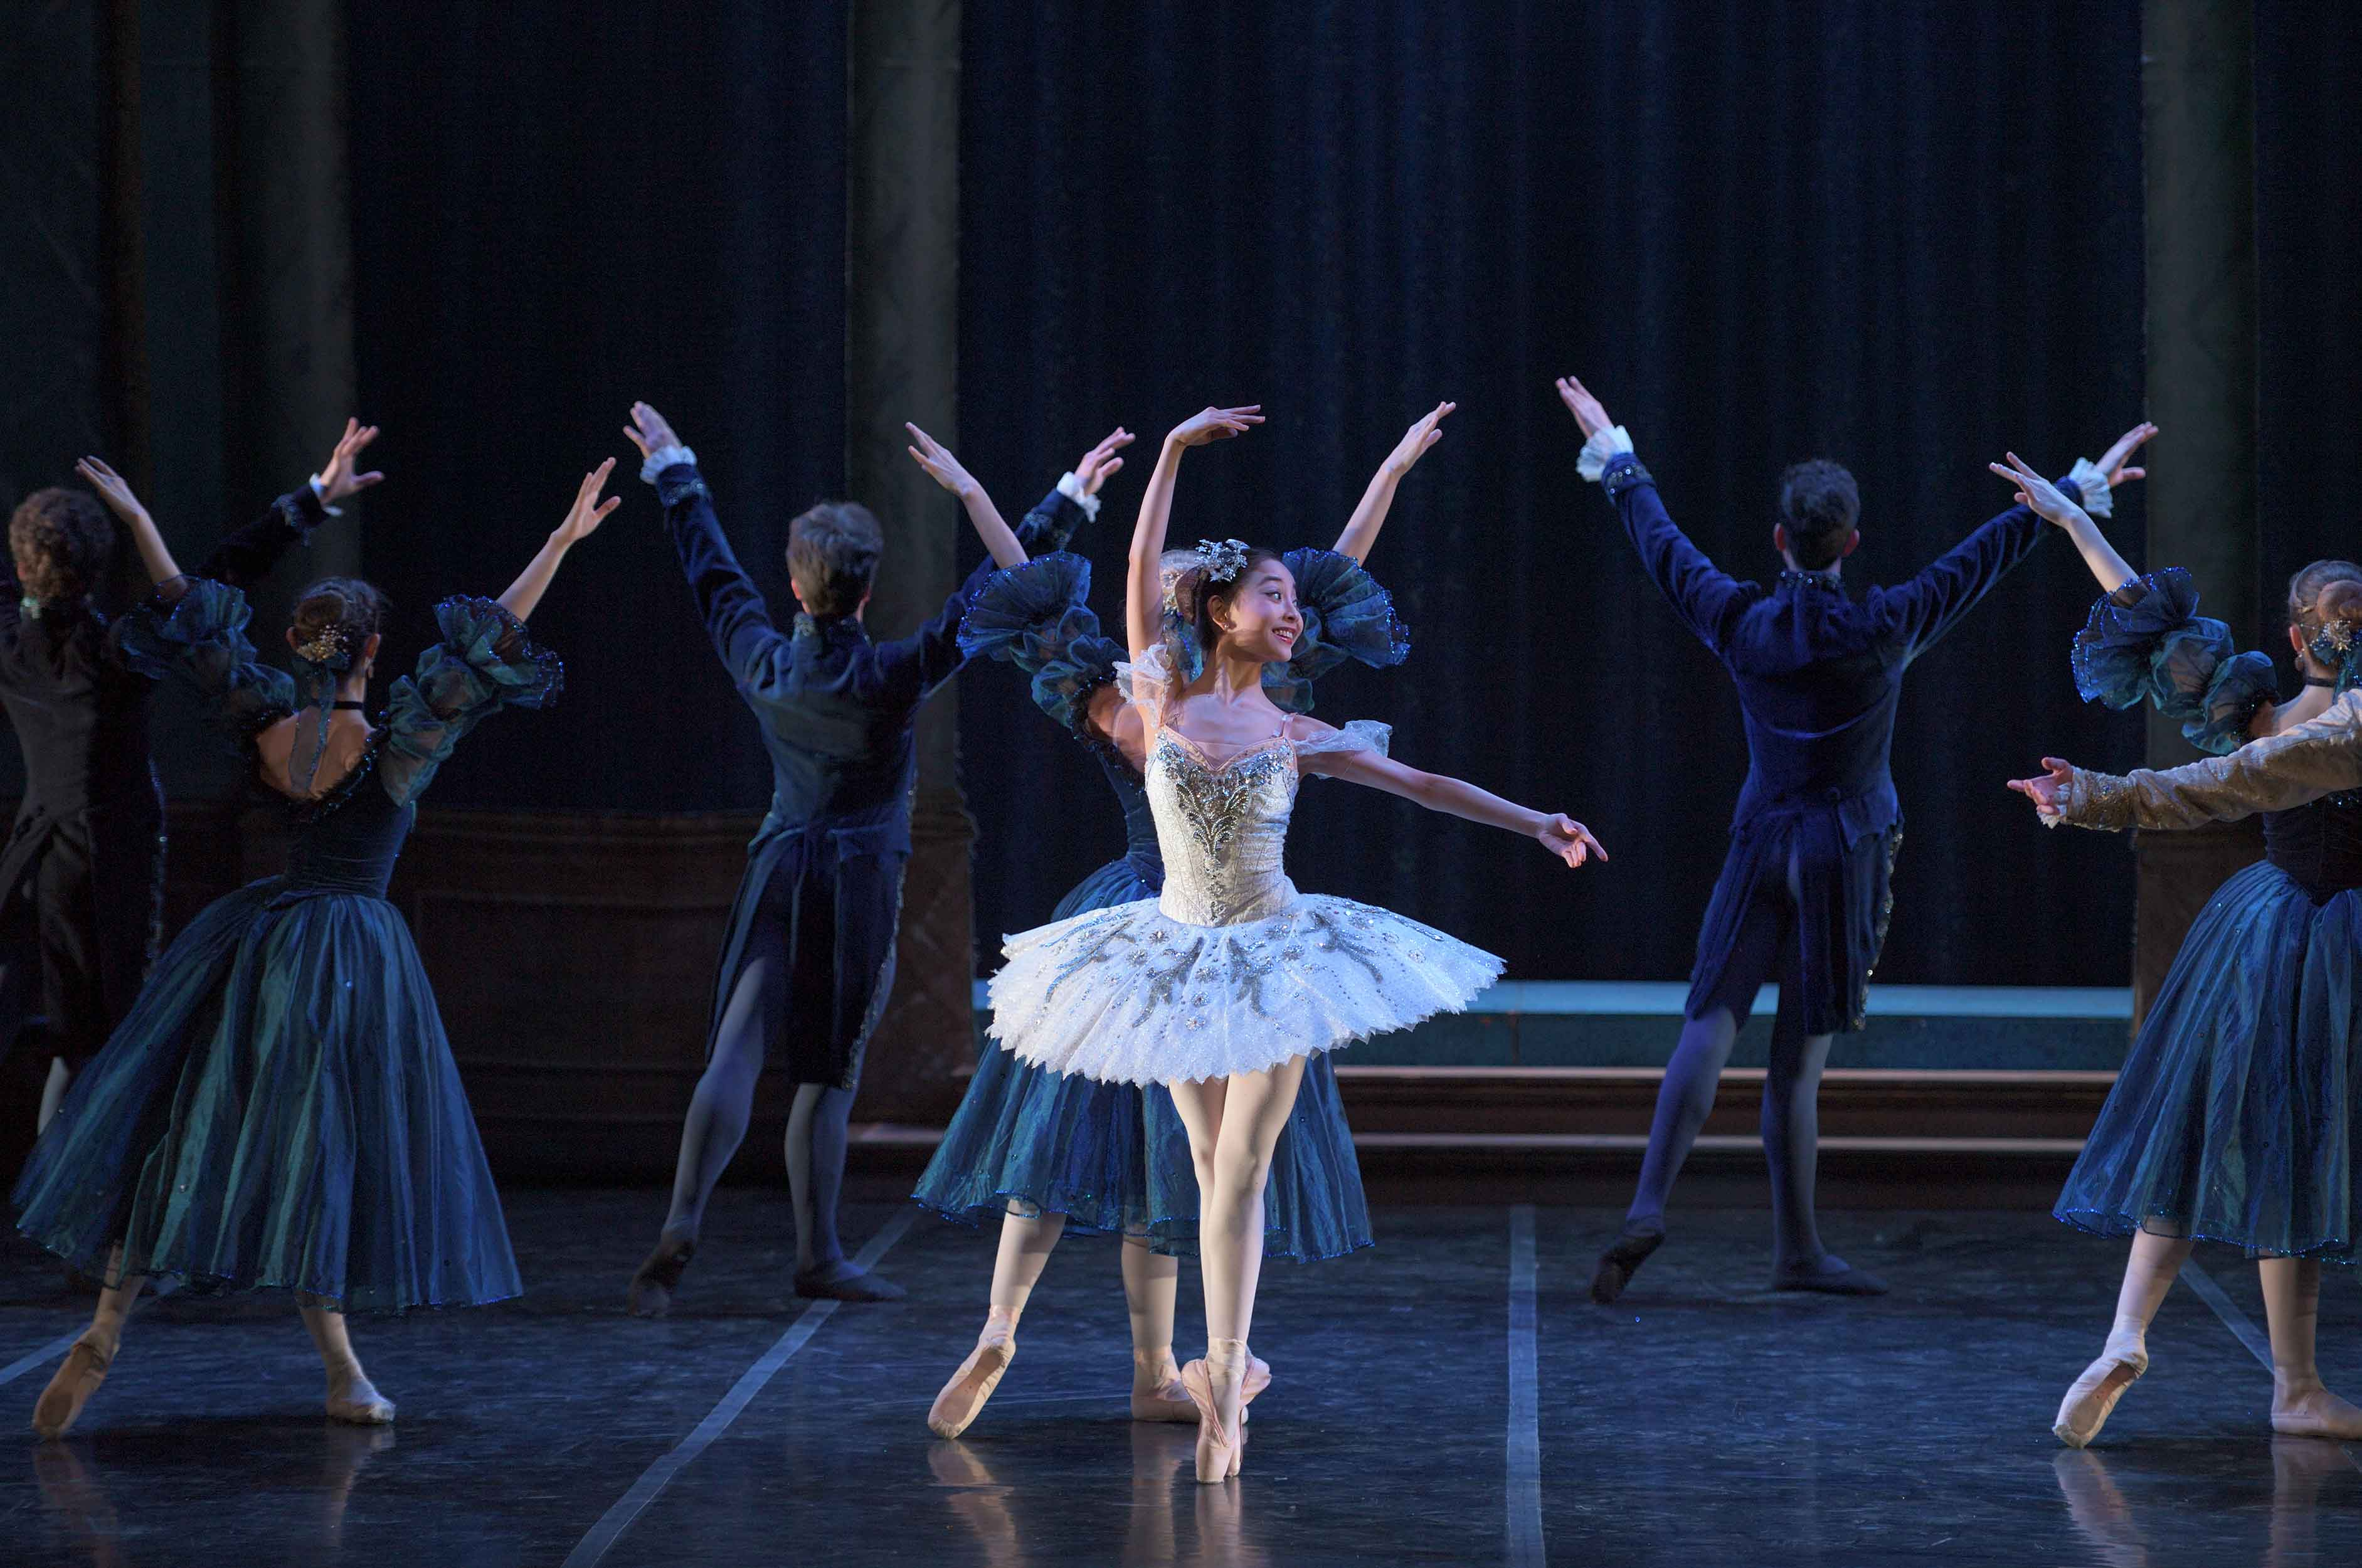 Remi-Nakano-as-Cinderella-and-Yuki-Nakaaki-as-The-Prince-in-My-First-Ballet-Cinderella-©-Laurent-Liotardo-(2)